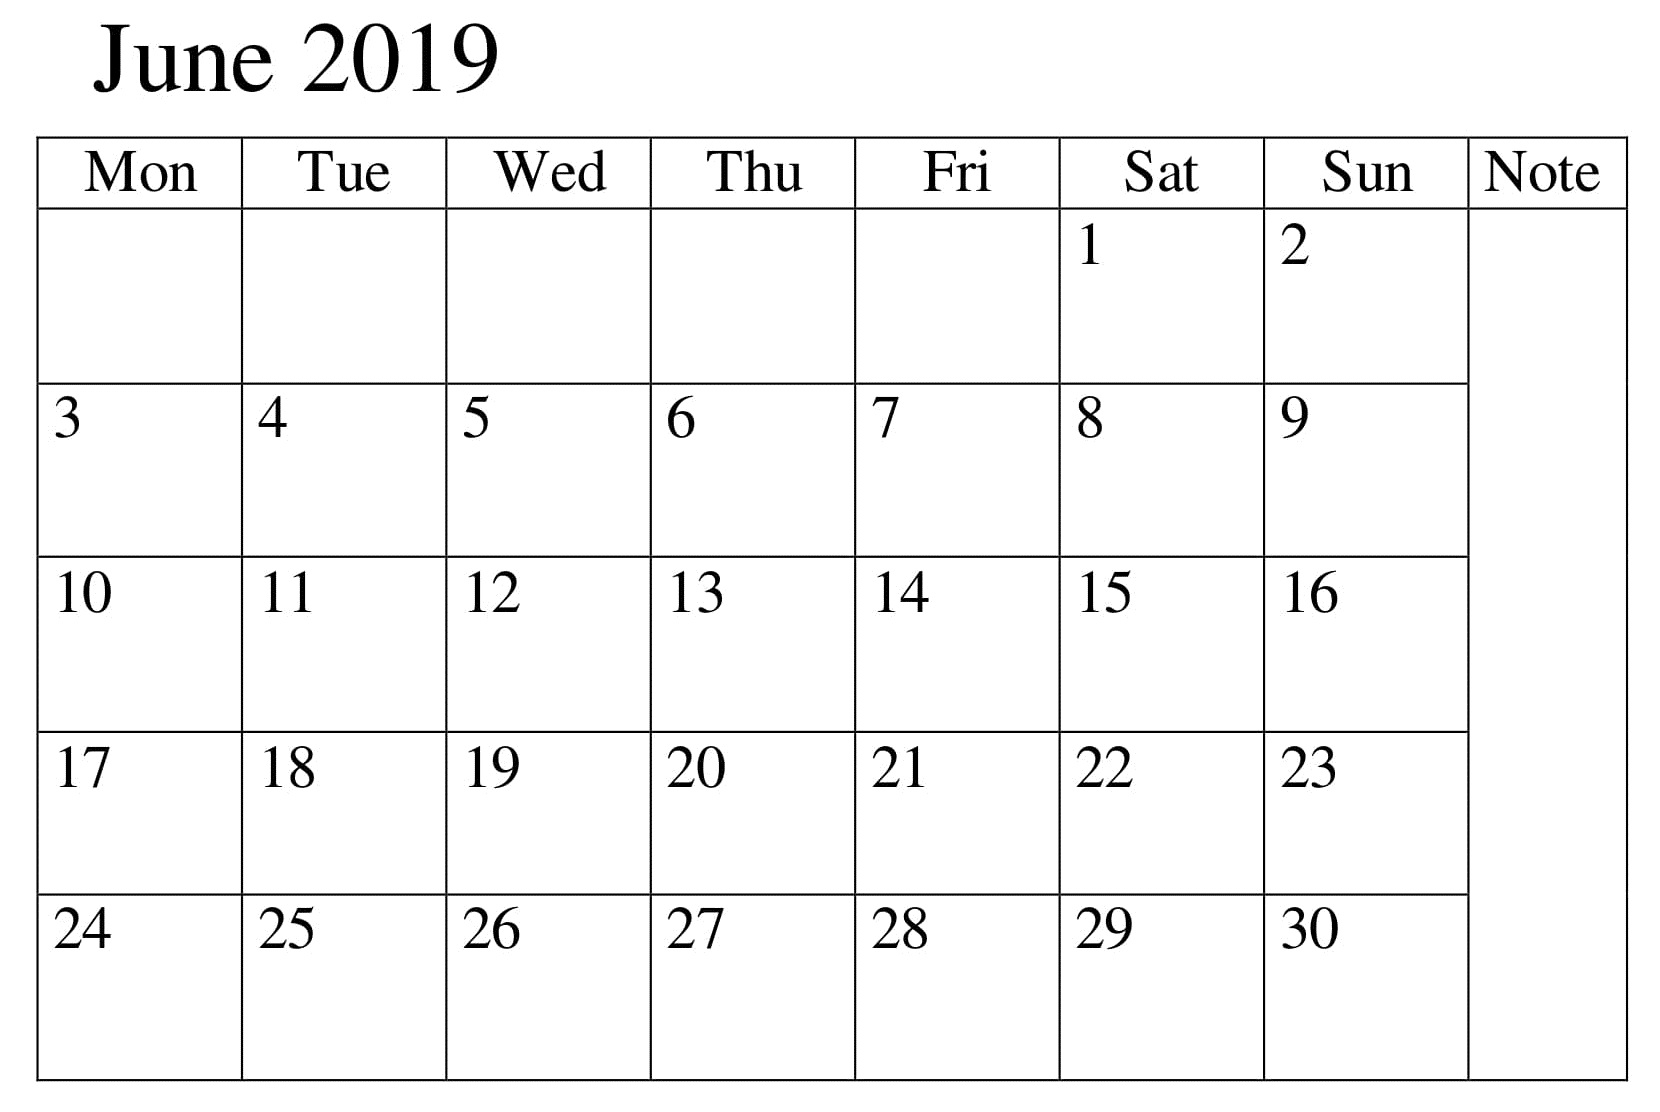 Calendar June 2019 Template Excel